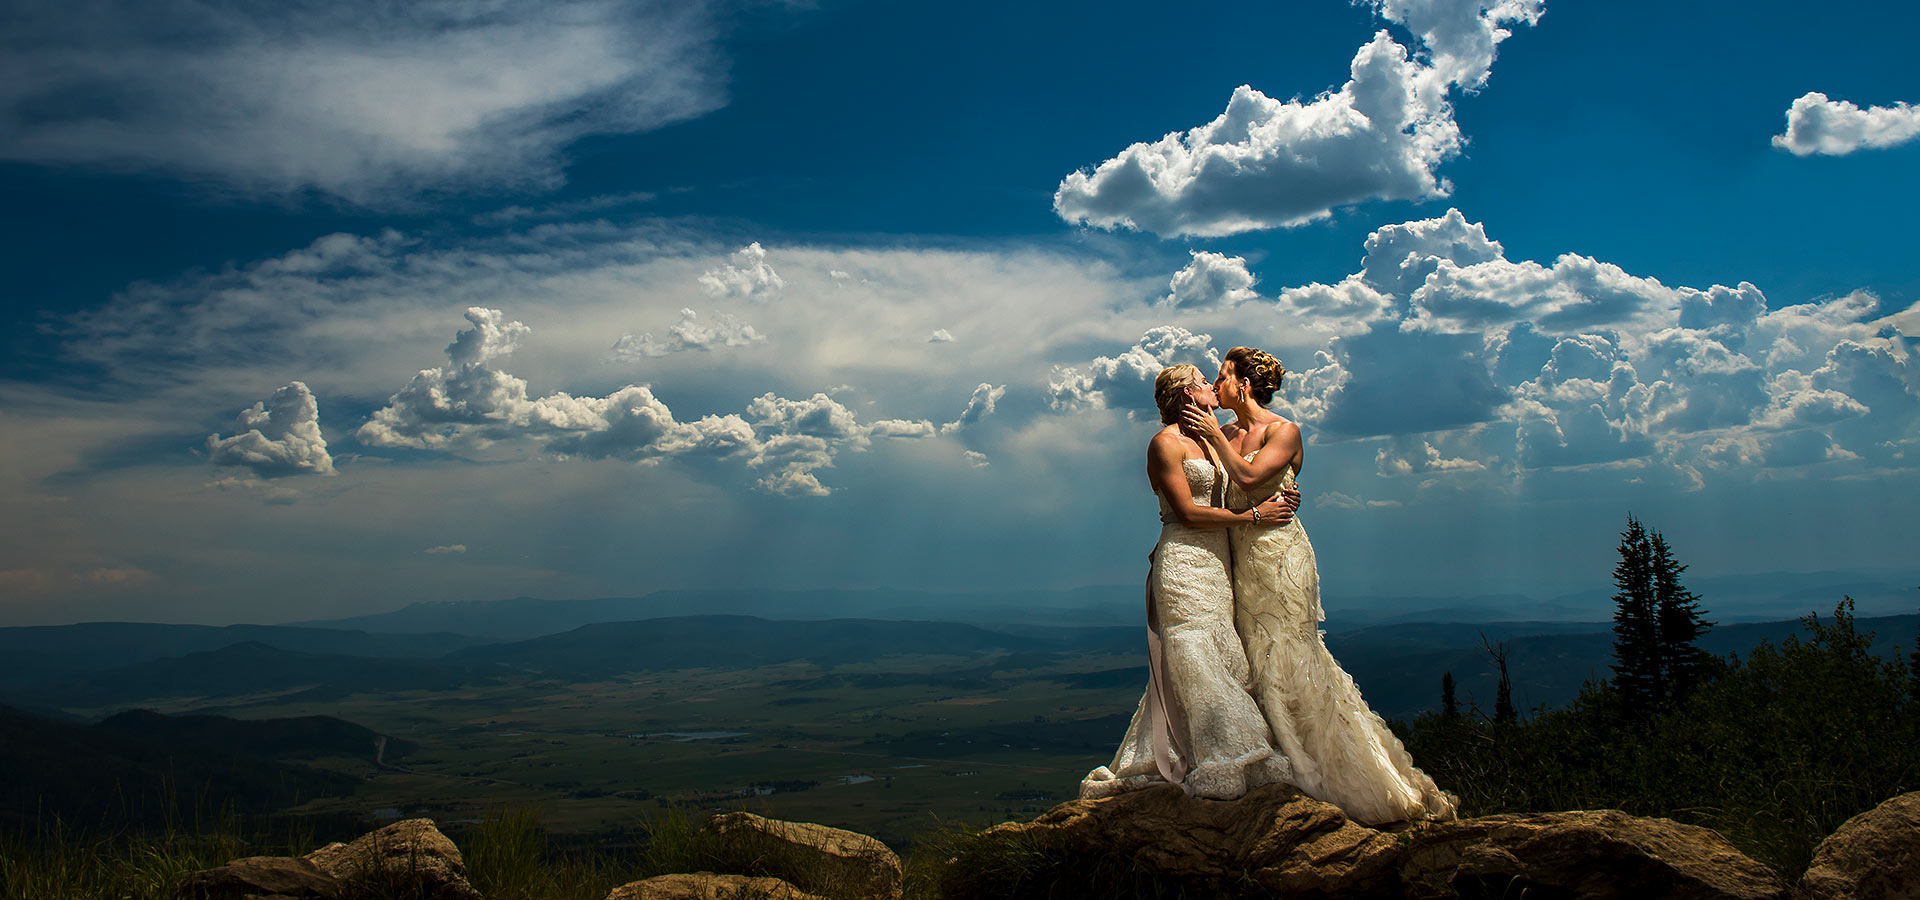 Bride and Bride Wedding Portrait | Steamboat Springs Wedding | Colorado Wedding Photographer | J. La Plante Photo